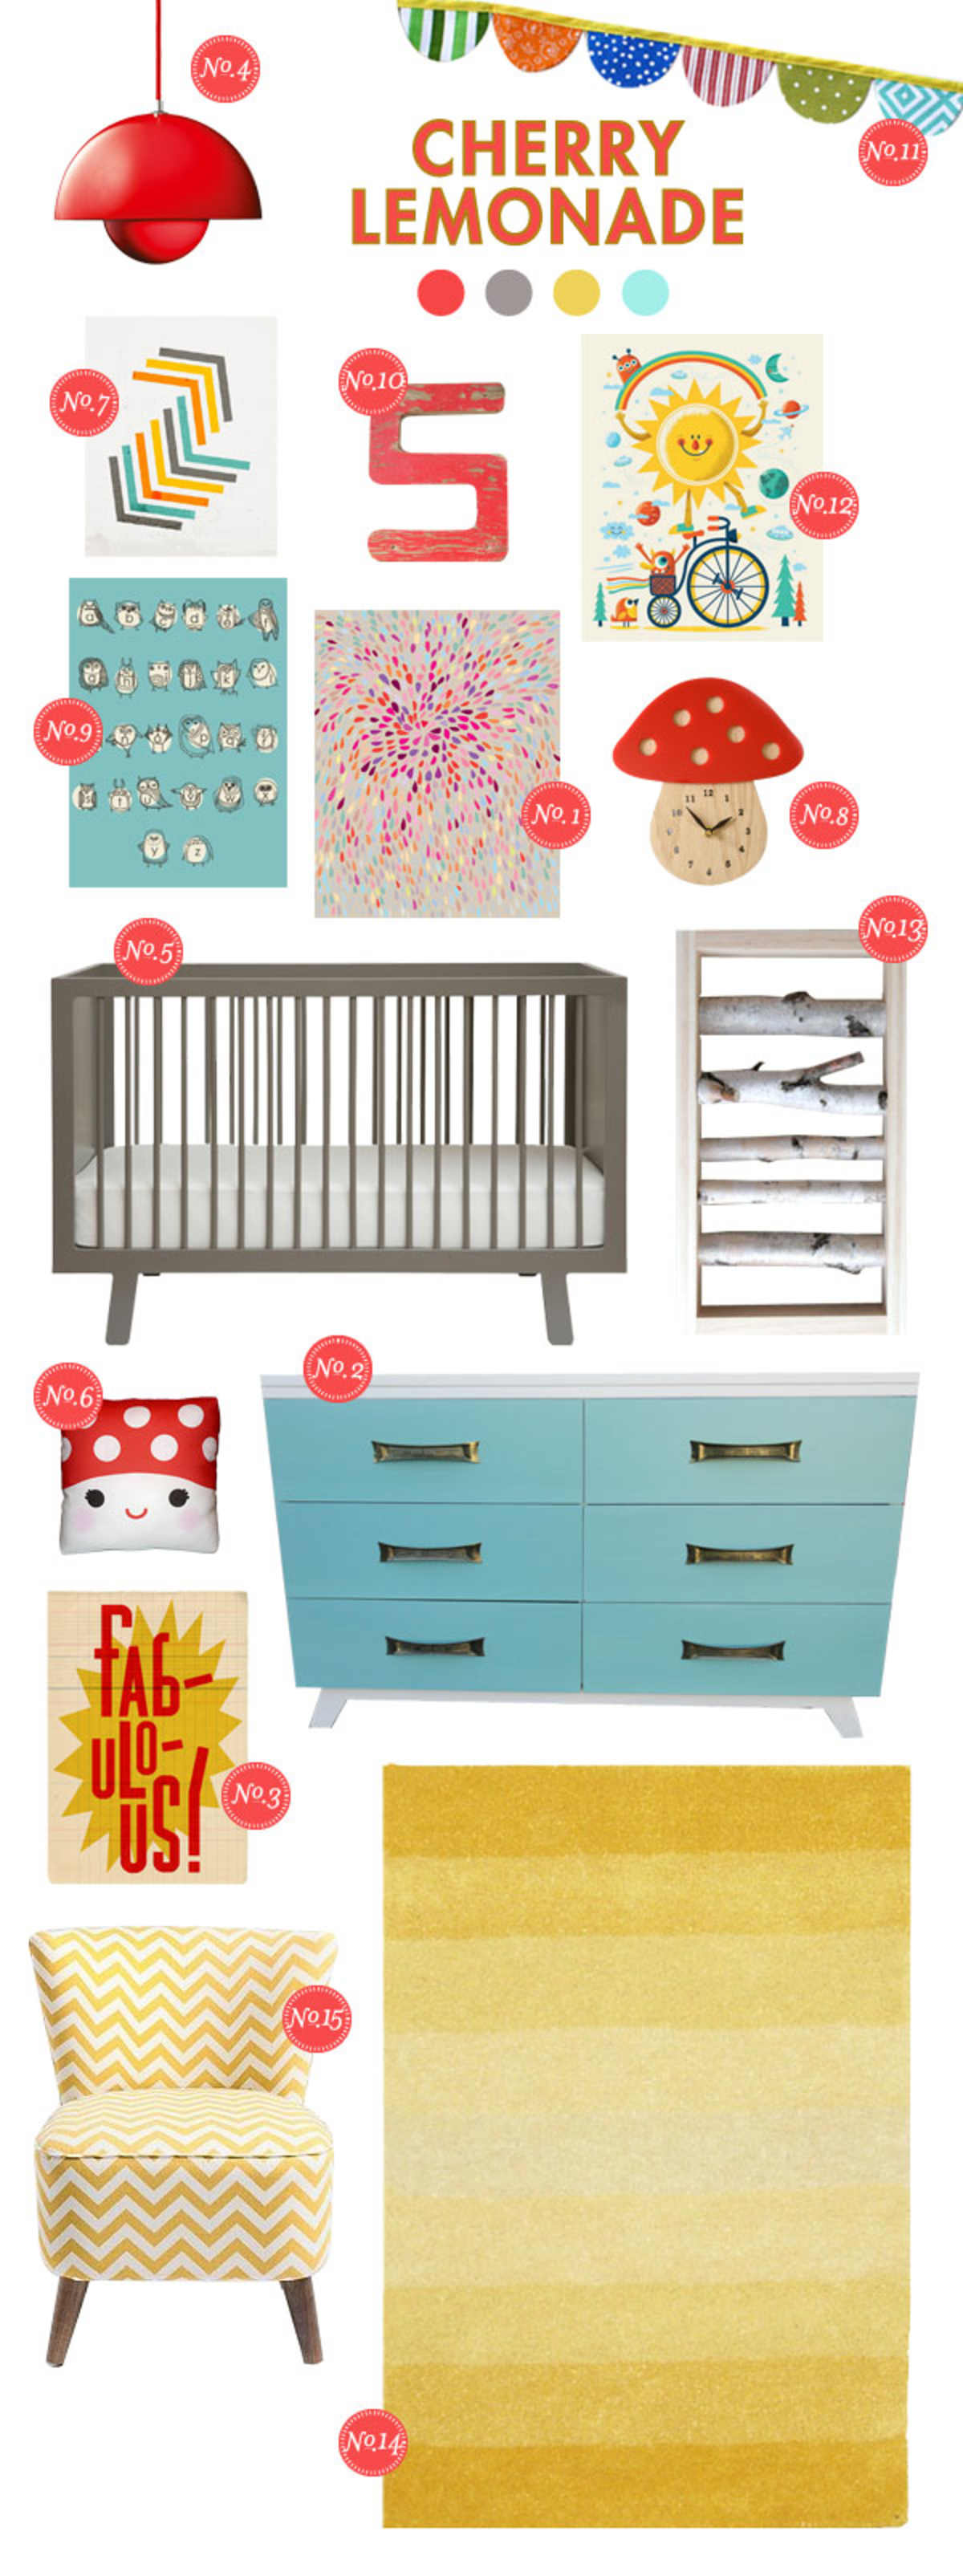 cherry lemonade bright baby room ideas